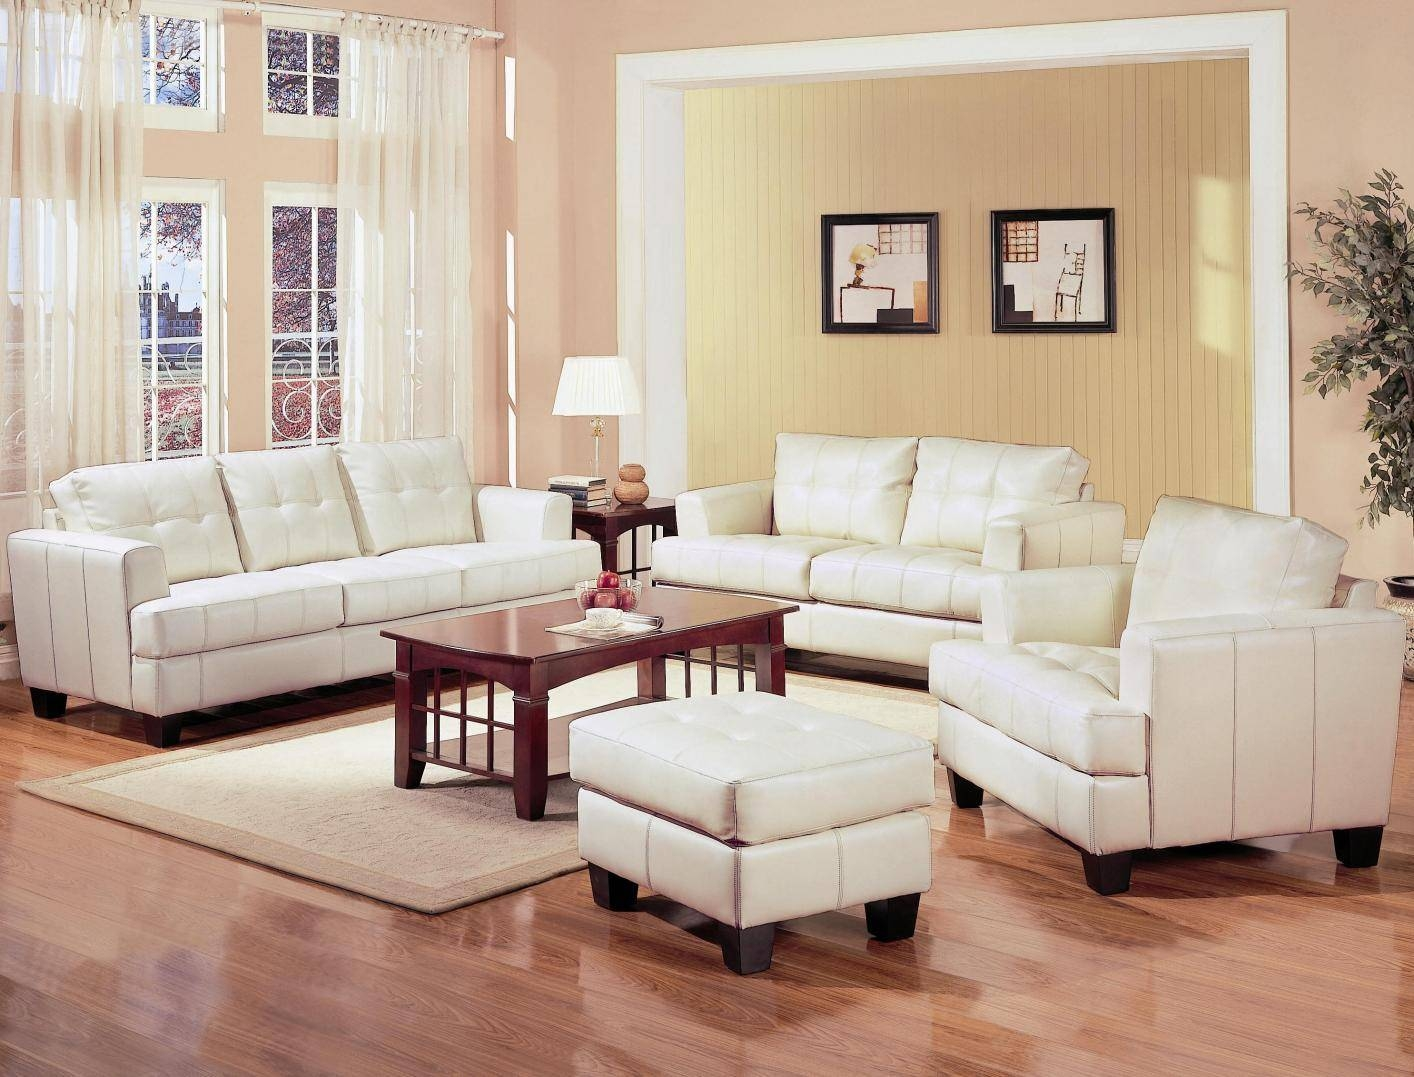 Samuel Beige Leather Sofa - Steal-A-Sofa Furniture Outlet Los in Beige Leather Couches (Image 12 of 15)